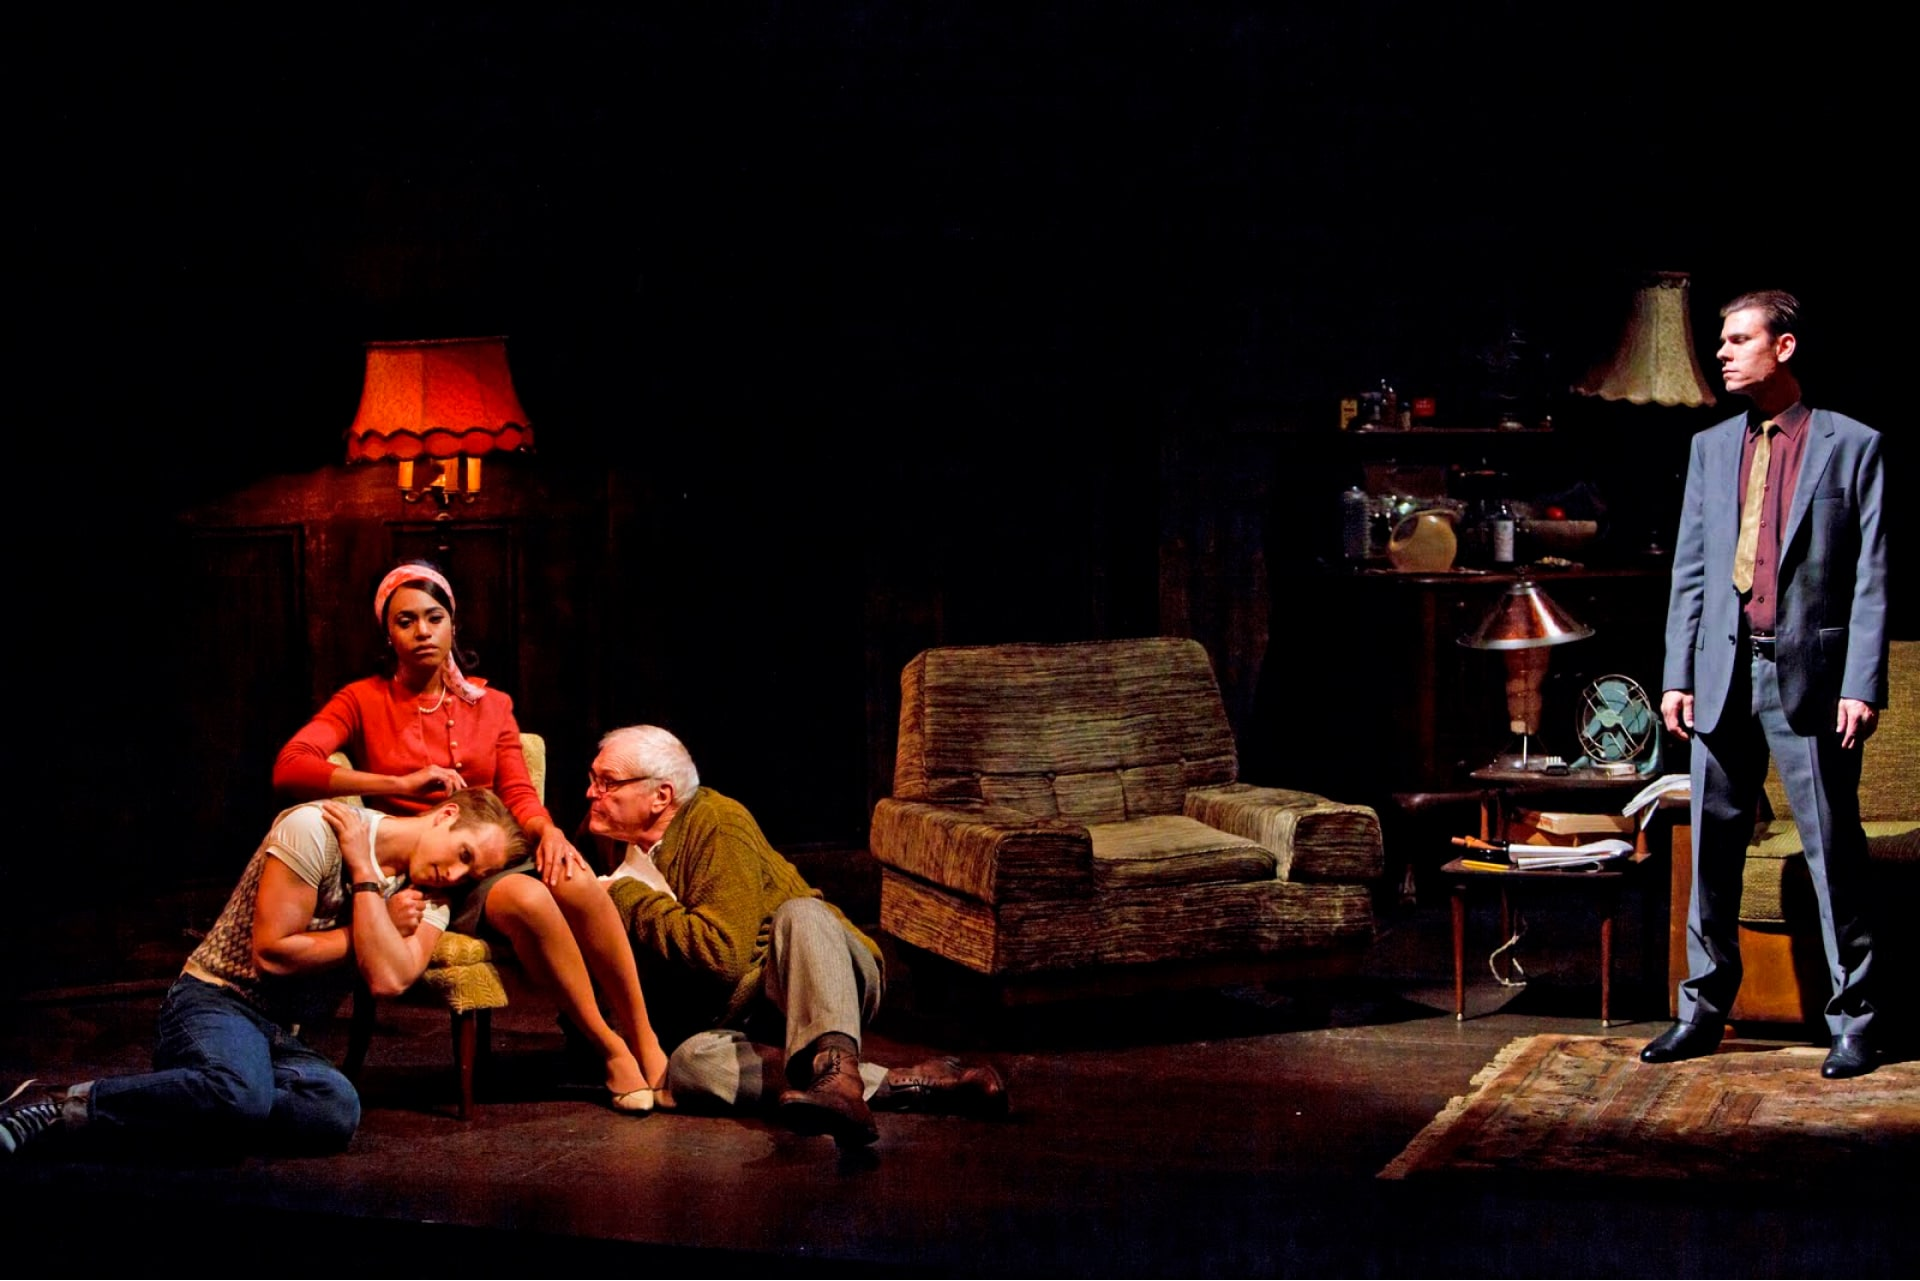 Woman sit in living room with two men crouched beside, watched by standing man